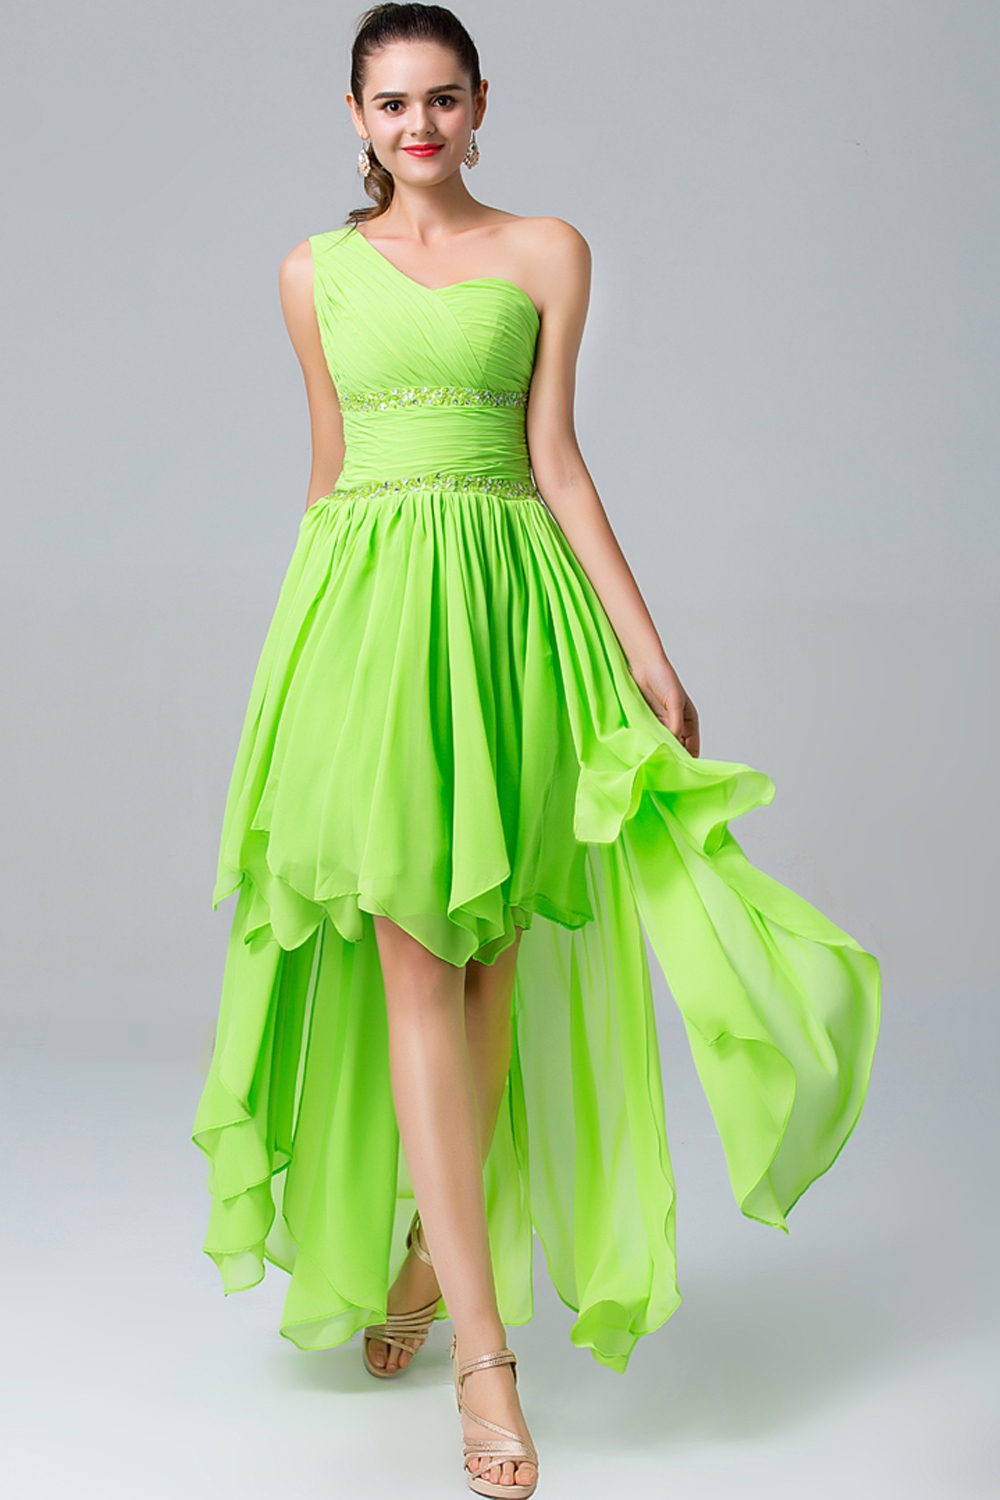 A-Line/Princess One-Shoulder Hi-Lo Chiffon Bridesmaid Dresses With Pleats